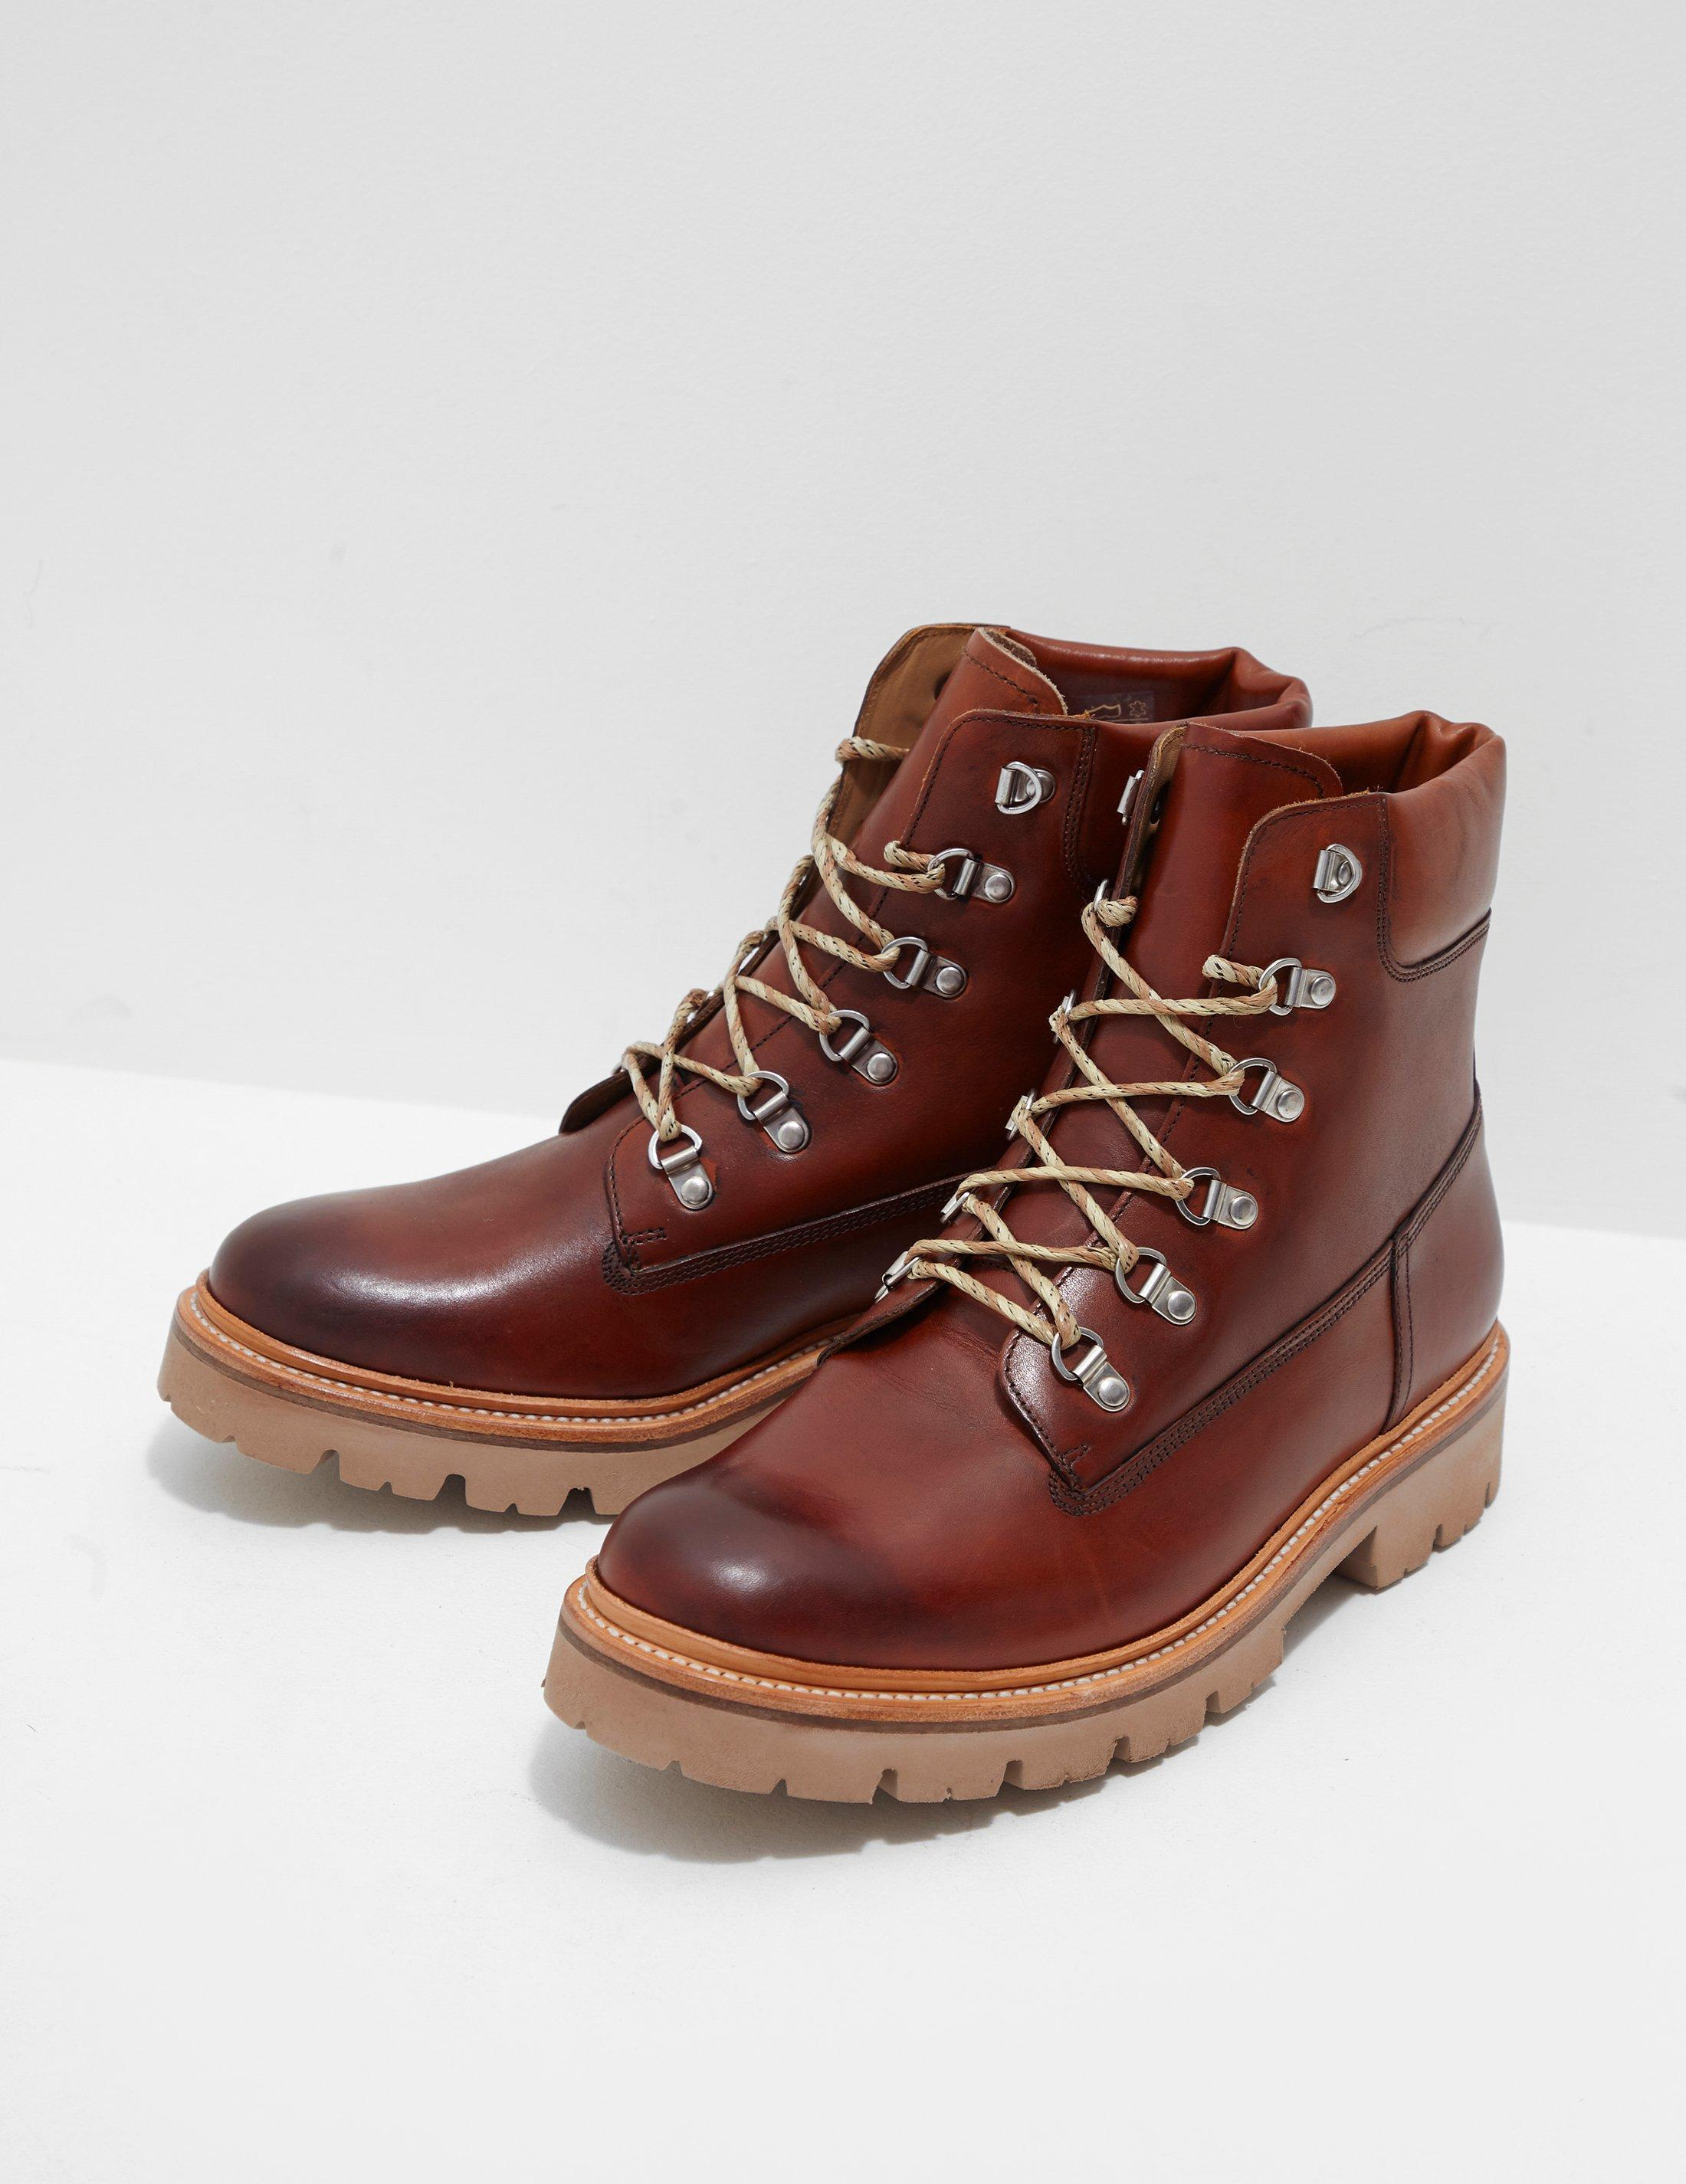 9007aef3128 Lyst - Grenson Rutherhood Leather Boots - Online Exclusive Brown in ...